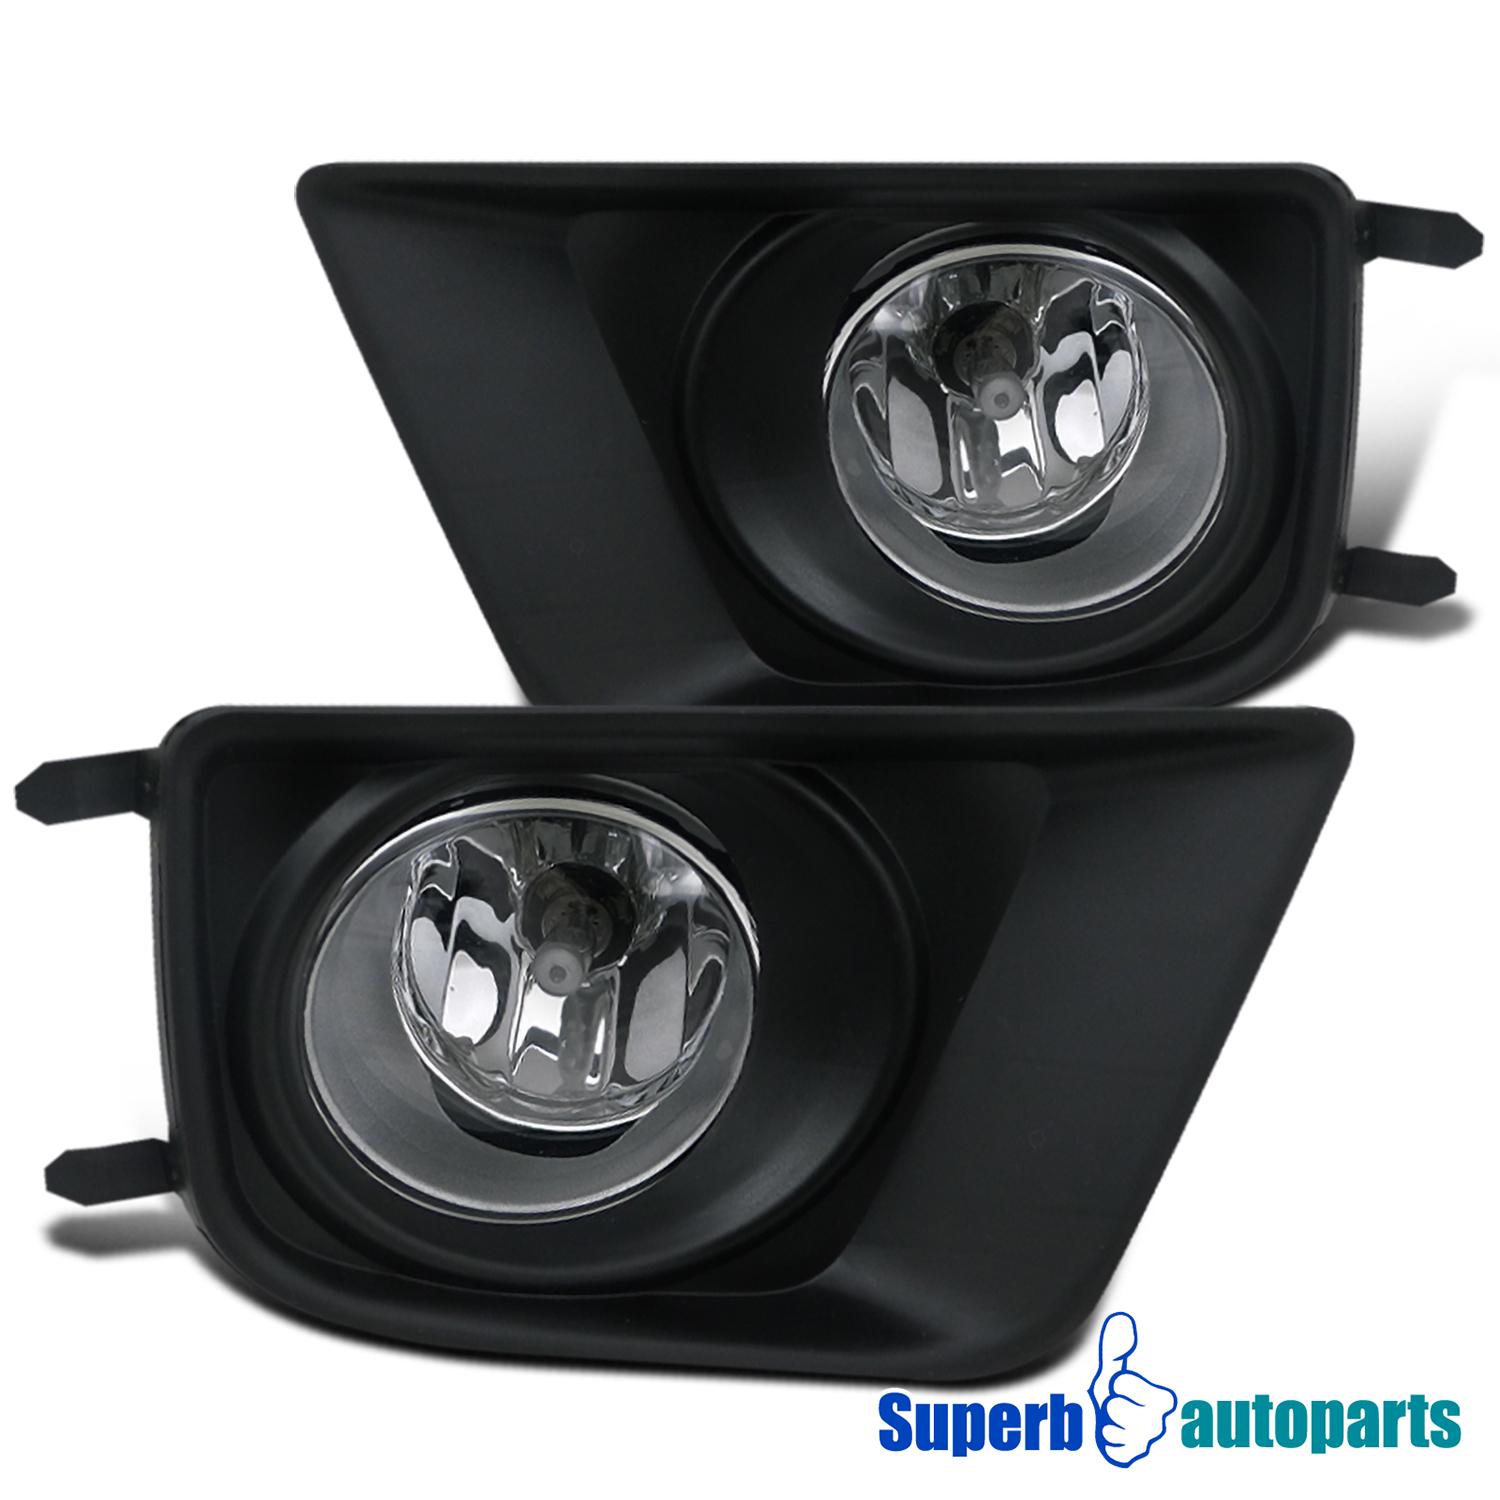 2014 toyota tacoma front bumper lights driving fog lamps switch clear. Black Bedroom Furniture Sets. Home Design Ideas